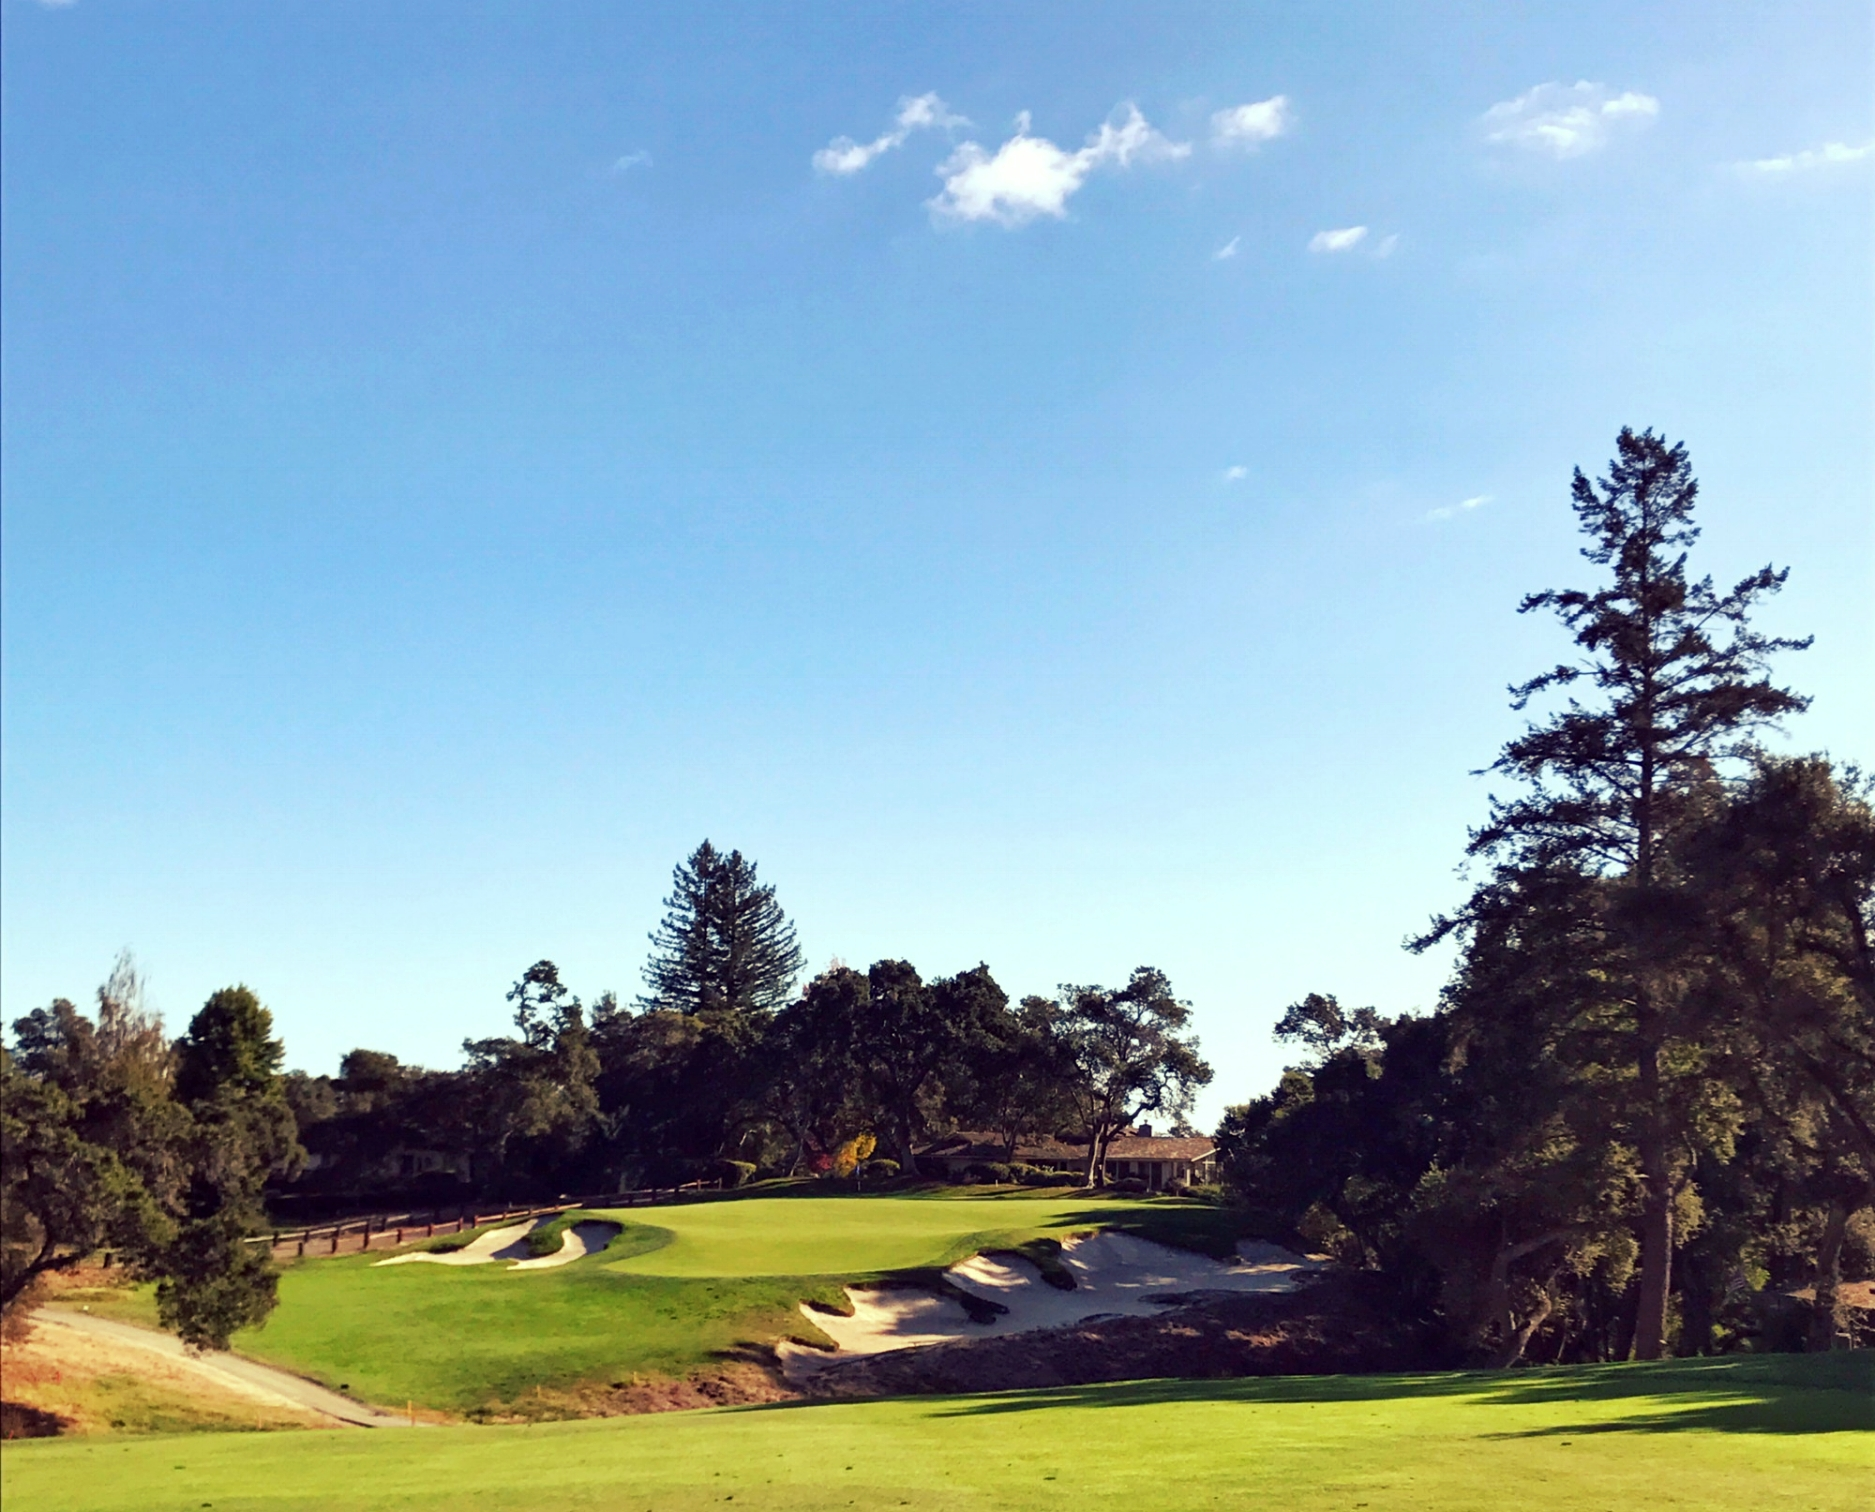 The sixteenth green at Pasatiempo, MacKenzie's favorite hole he ever designed.